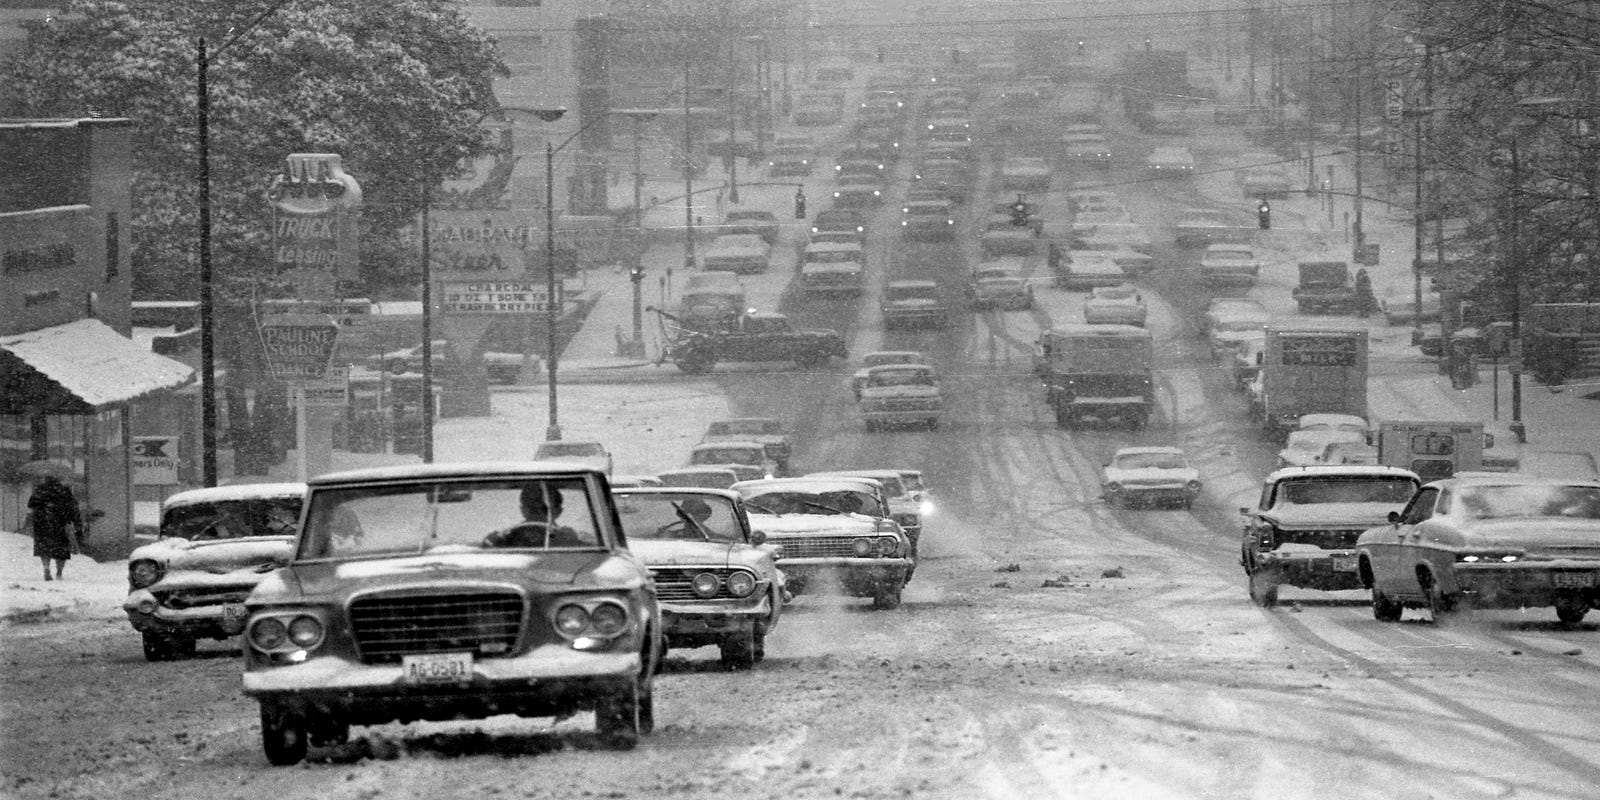 Nashville Then: A White Christmas 1966